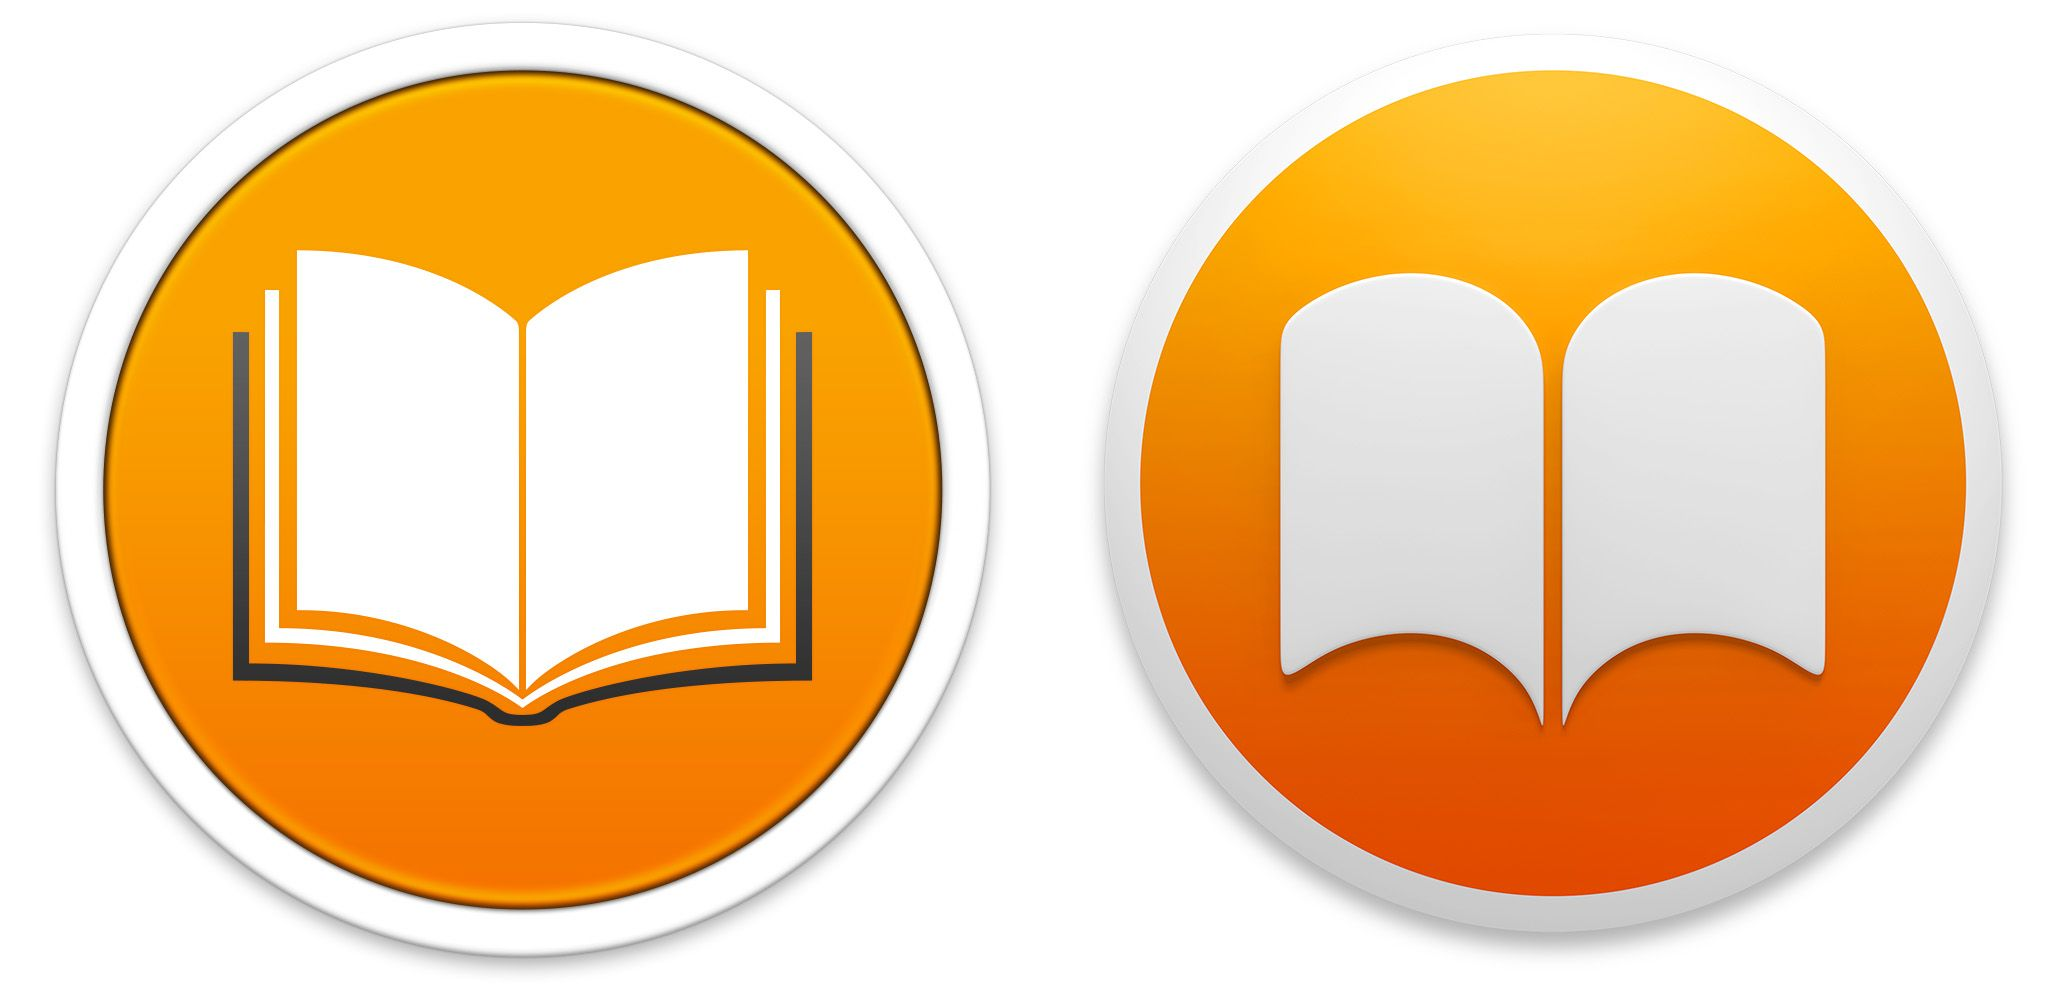 ibooks | Branding GFX | Apple mac, App icon, Apple images